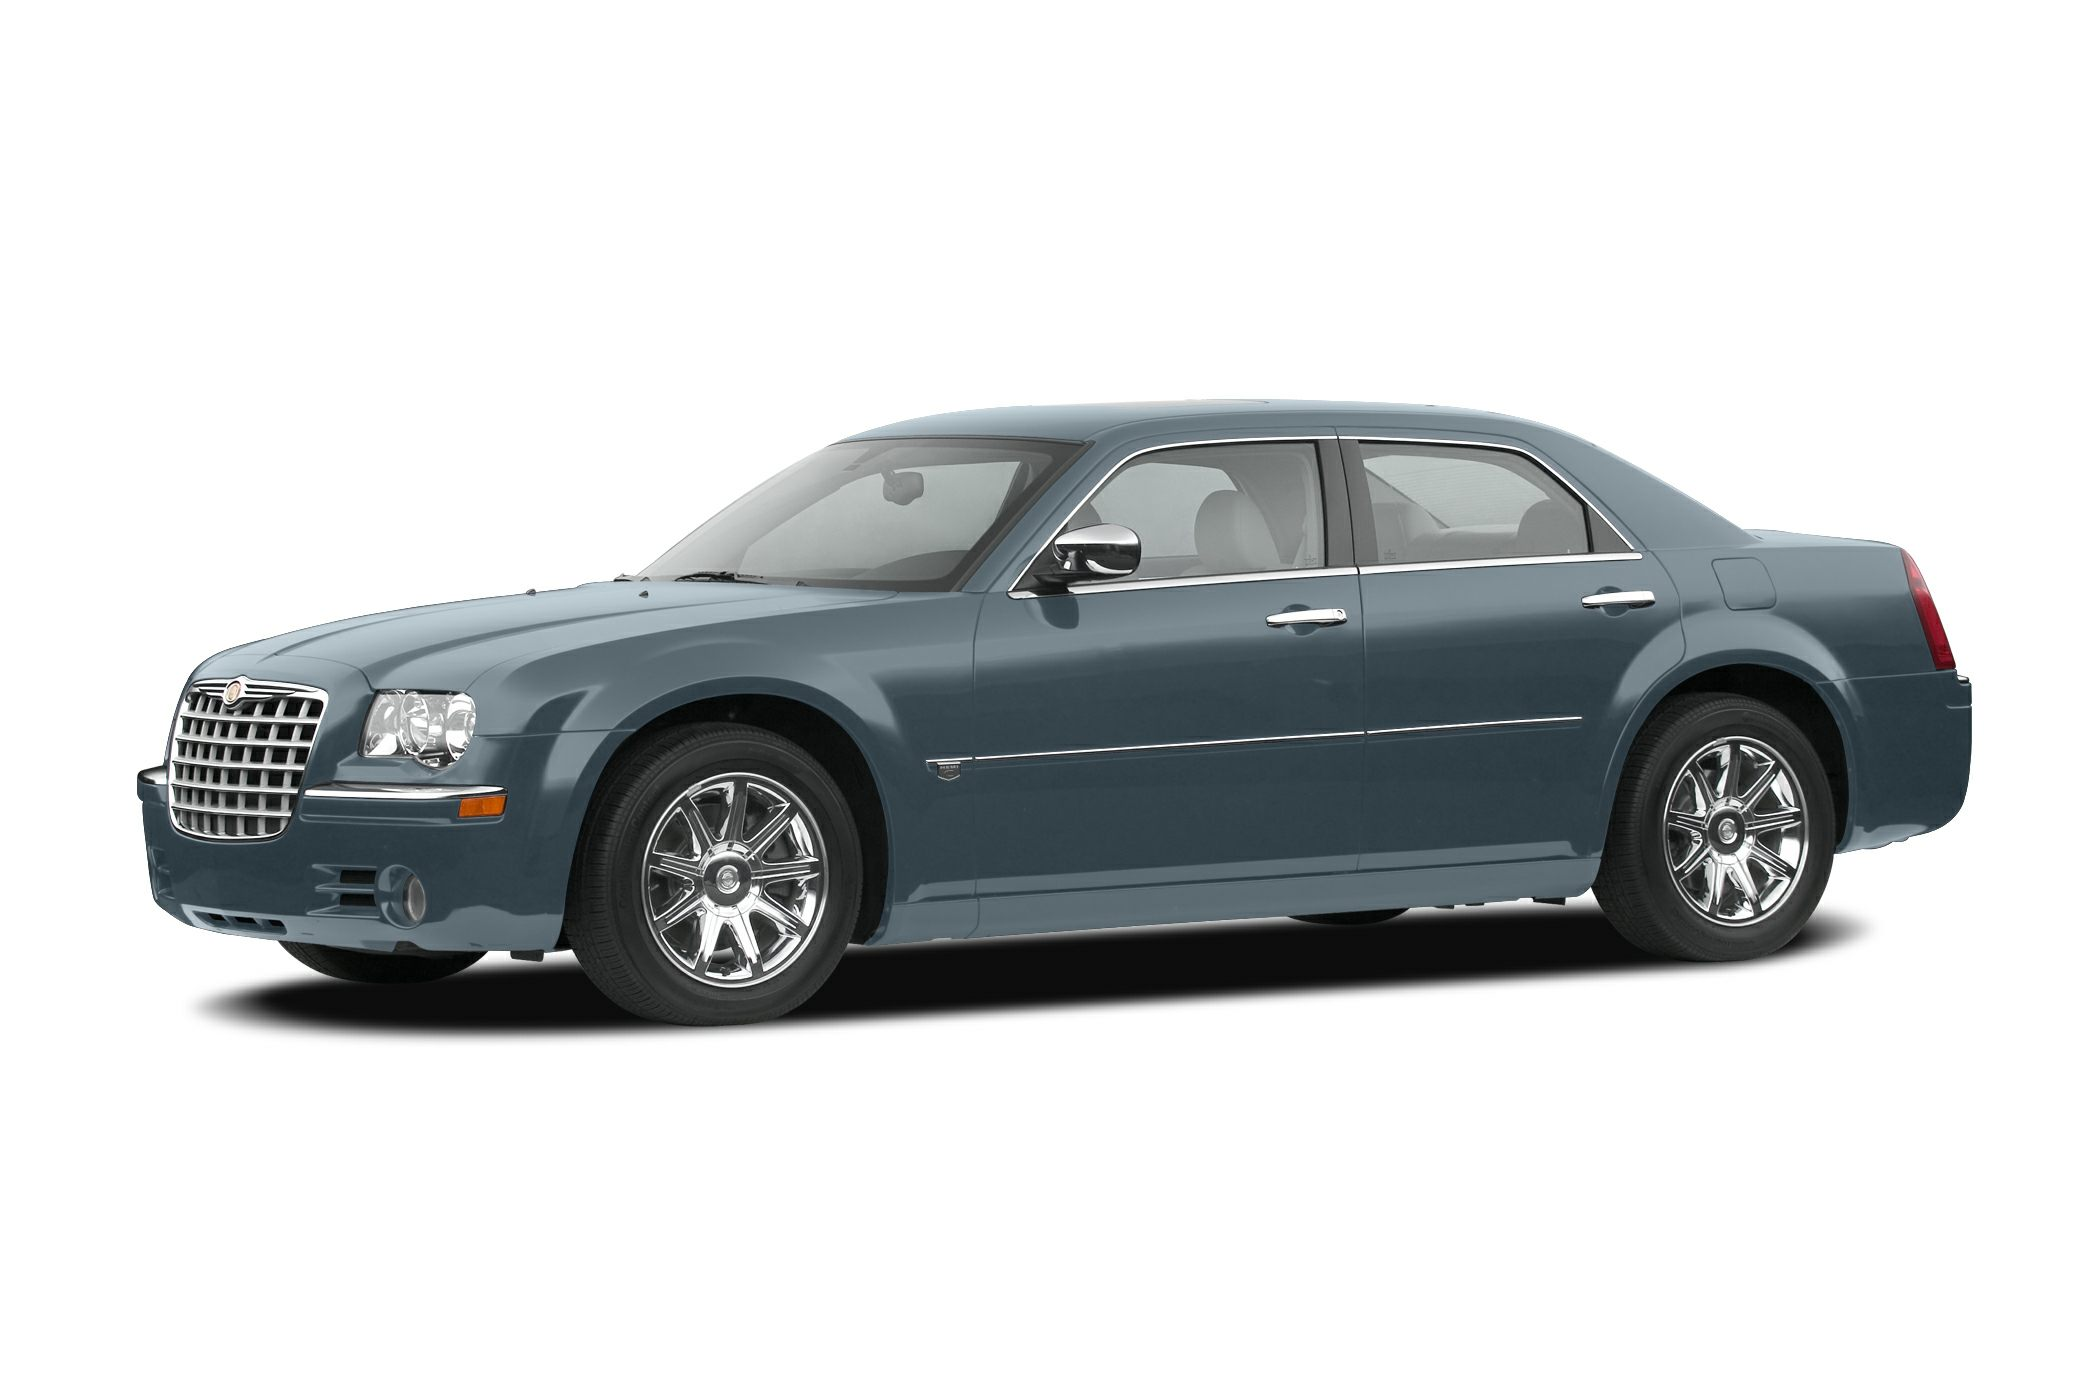 2007 Chrysler 300C Sedan for sale in Woodville for $12,809 with 77,965 miles